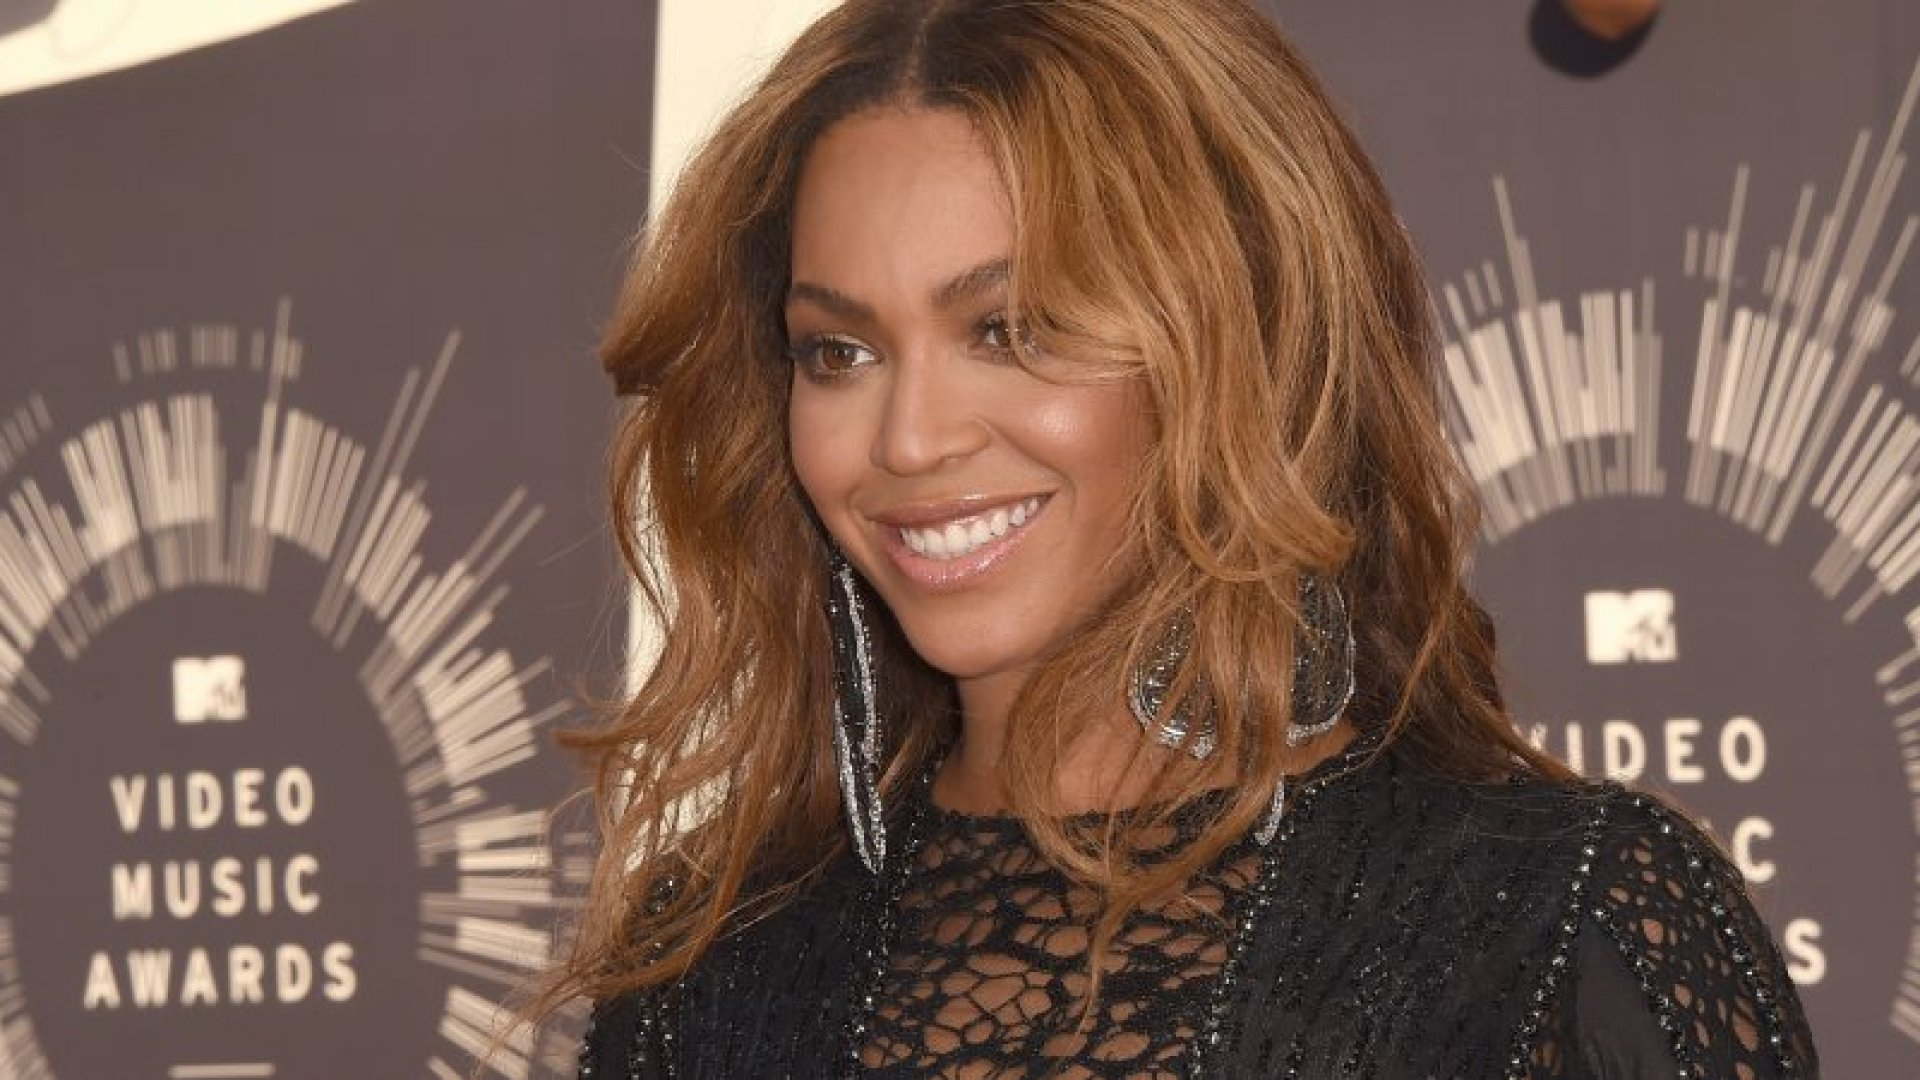 7 Lessons From Beyonce's Social Media Guru